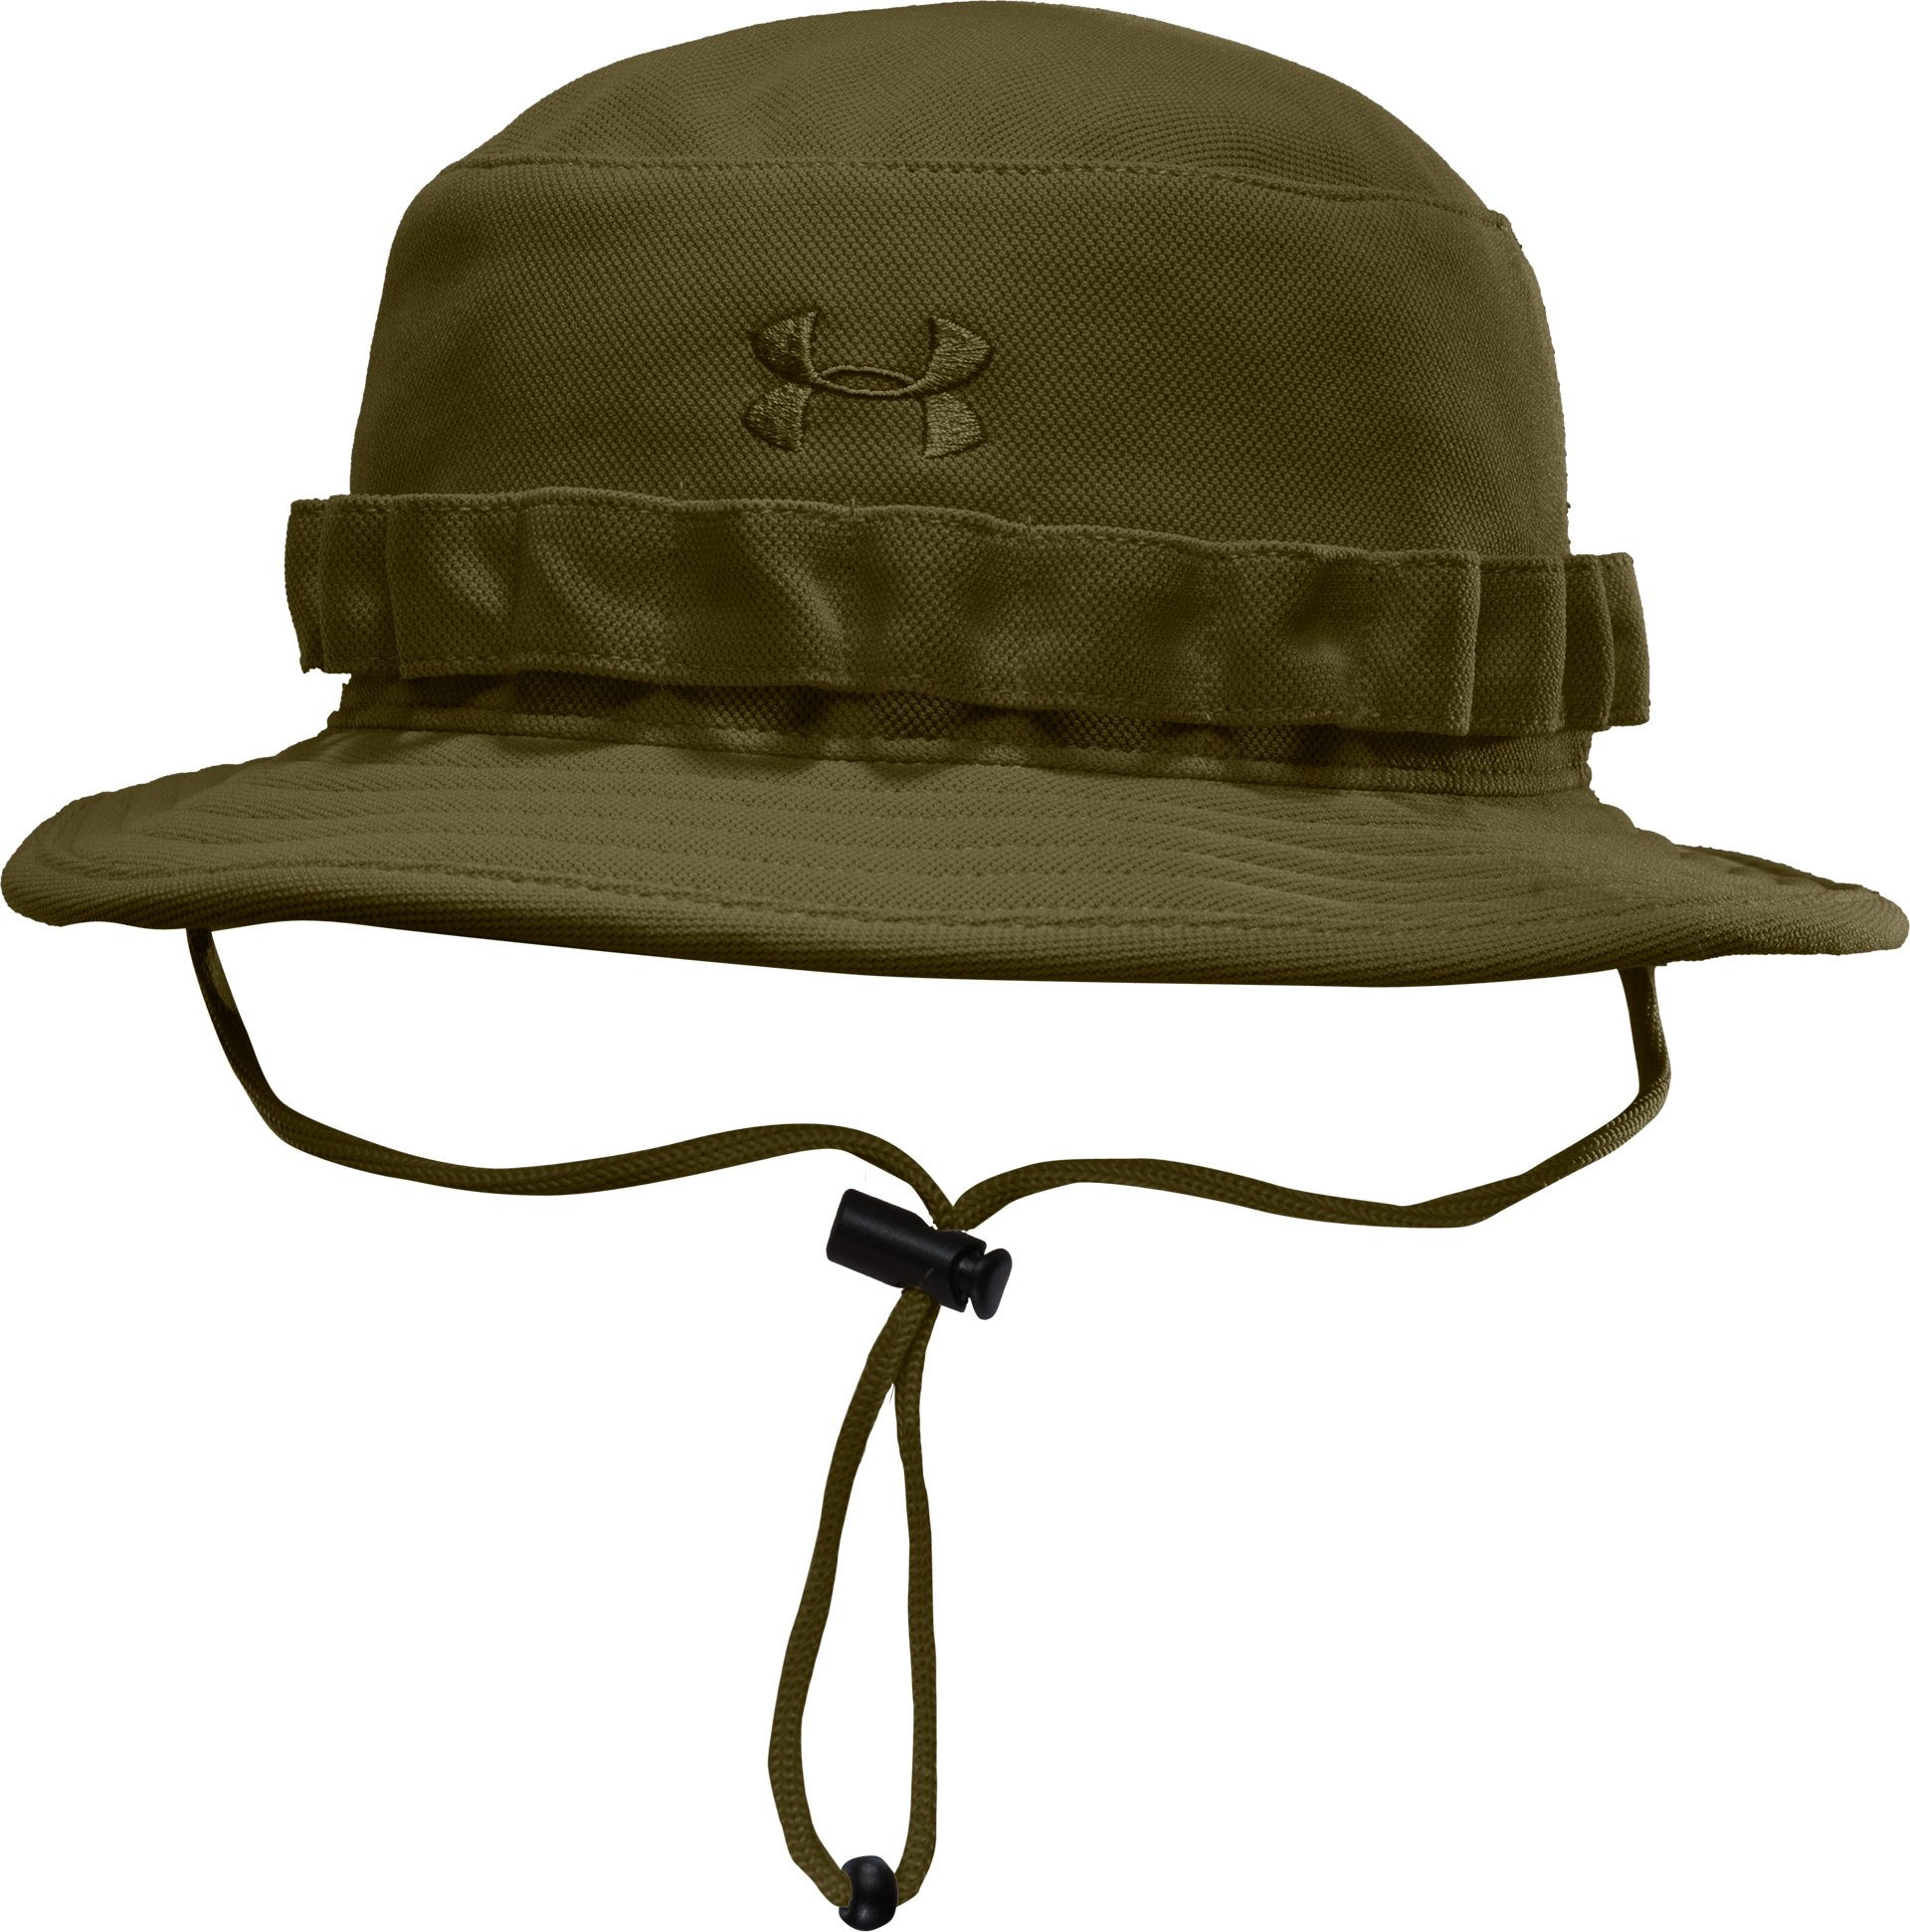 "bucket hats Men's UA Tactical Bucket Hat ... Better than expected!...Well, I did... money well spent....Perfect ""boonie"""